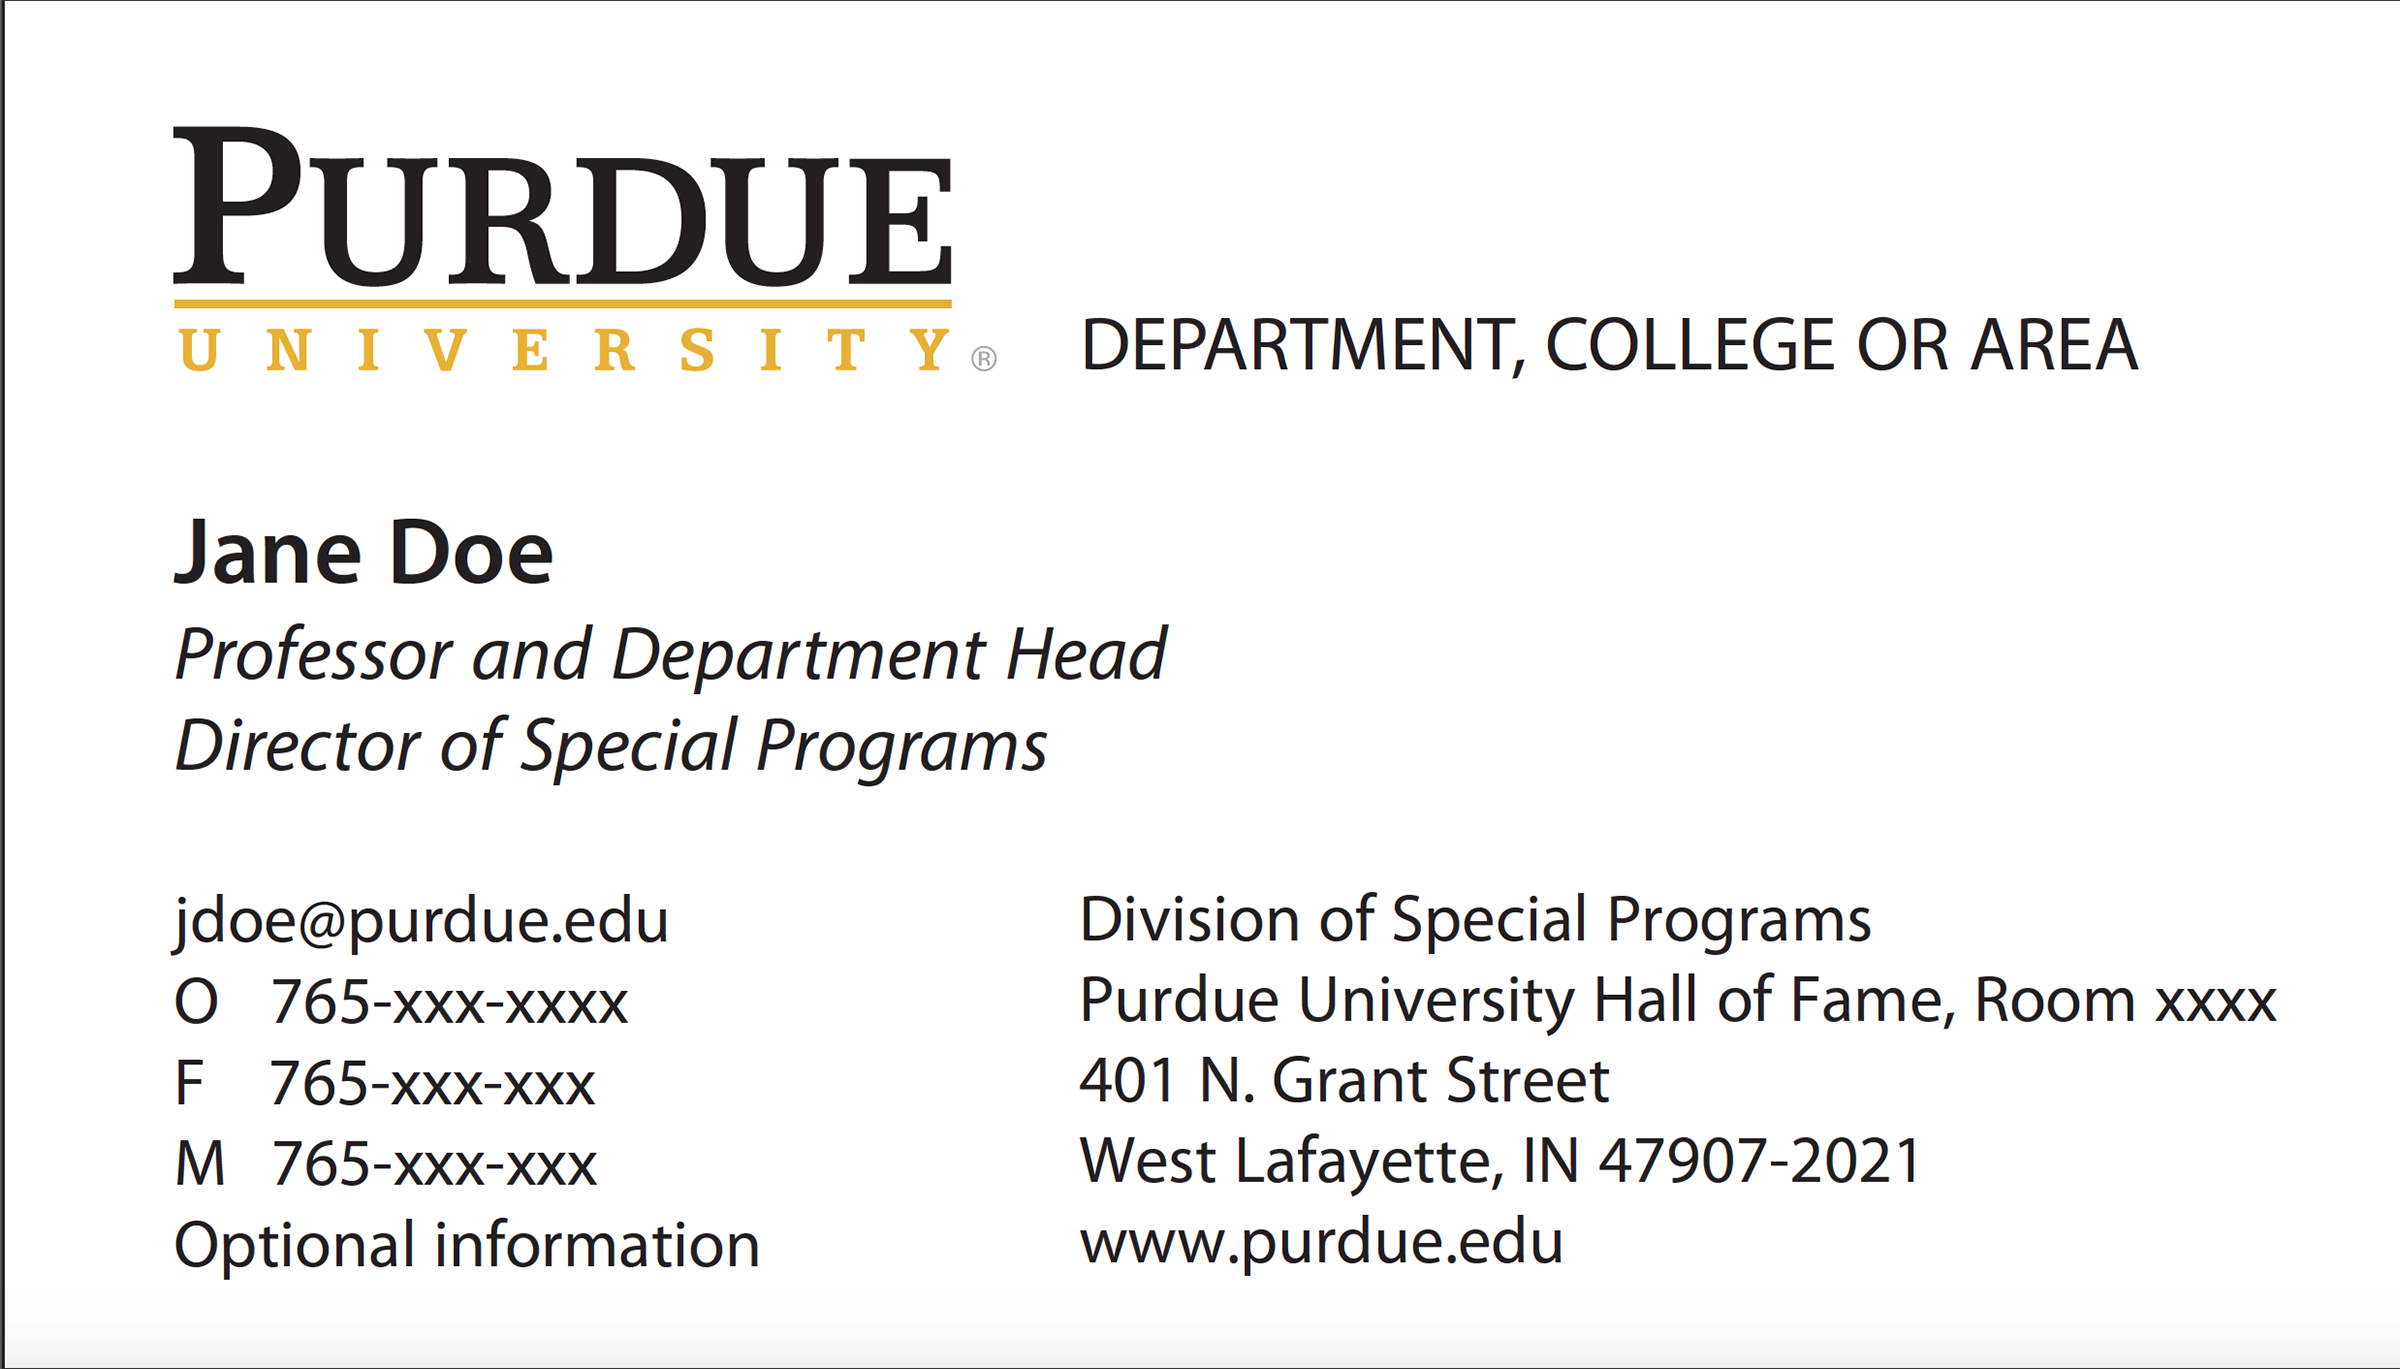 New business card template now online purdue university purdues new standard business card layout accmission Gallery